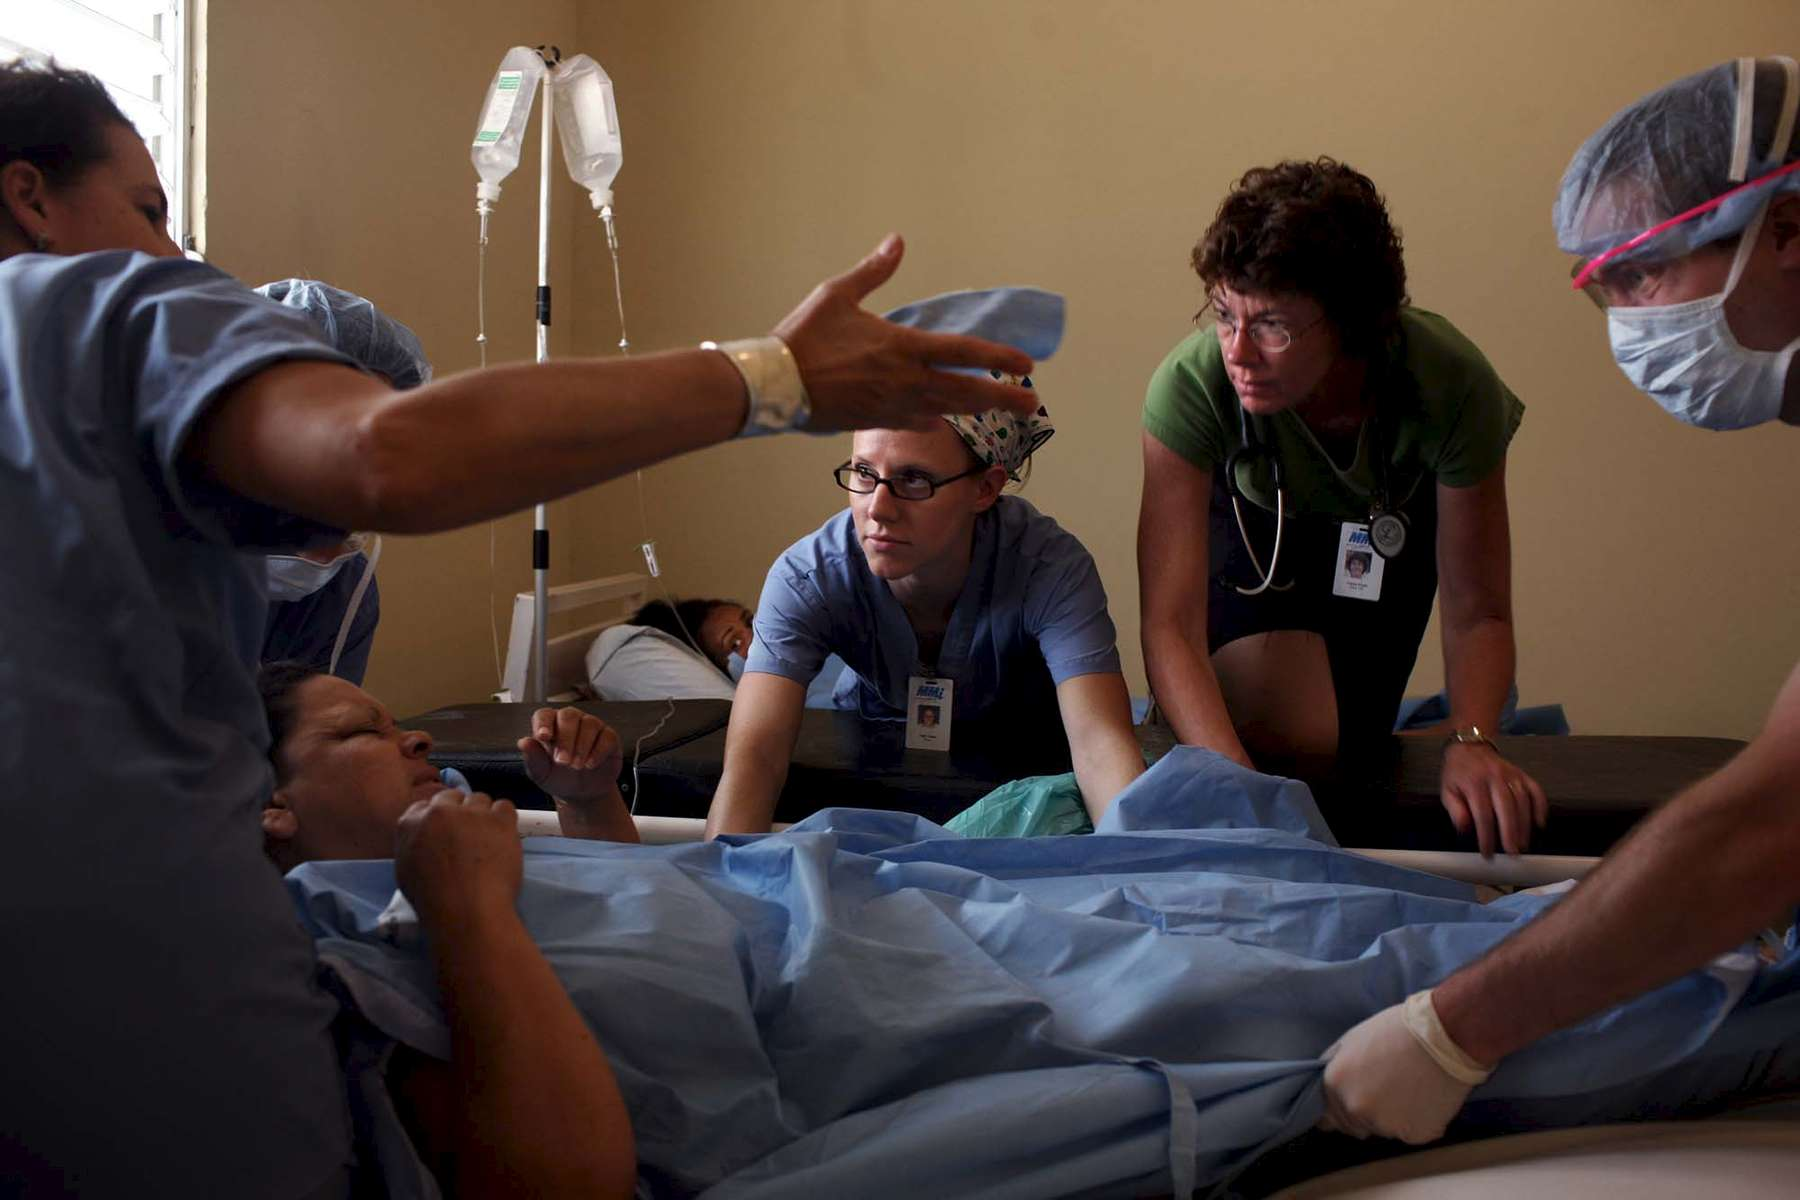 Nurses Sally Jones, center, and Caren Evans help move a patient into the recovery room after surgery. At right is Kevin Krebsbach.